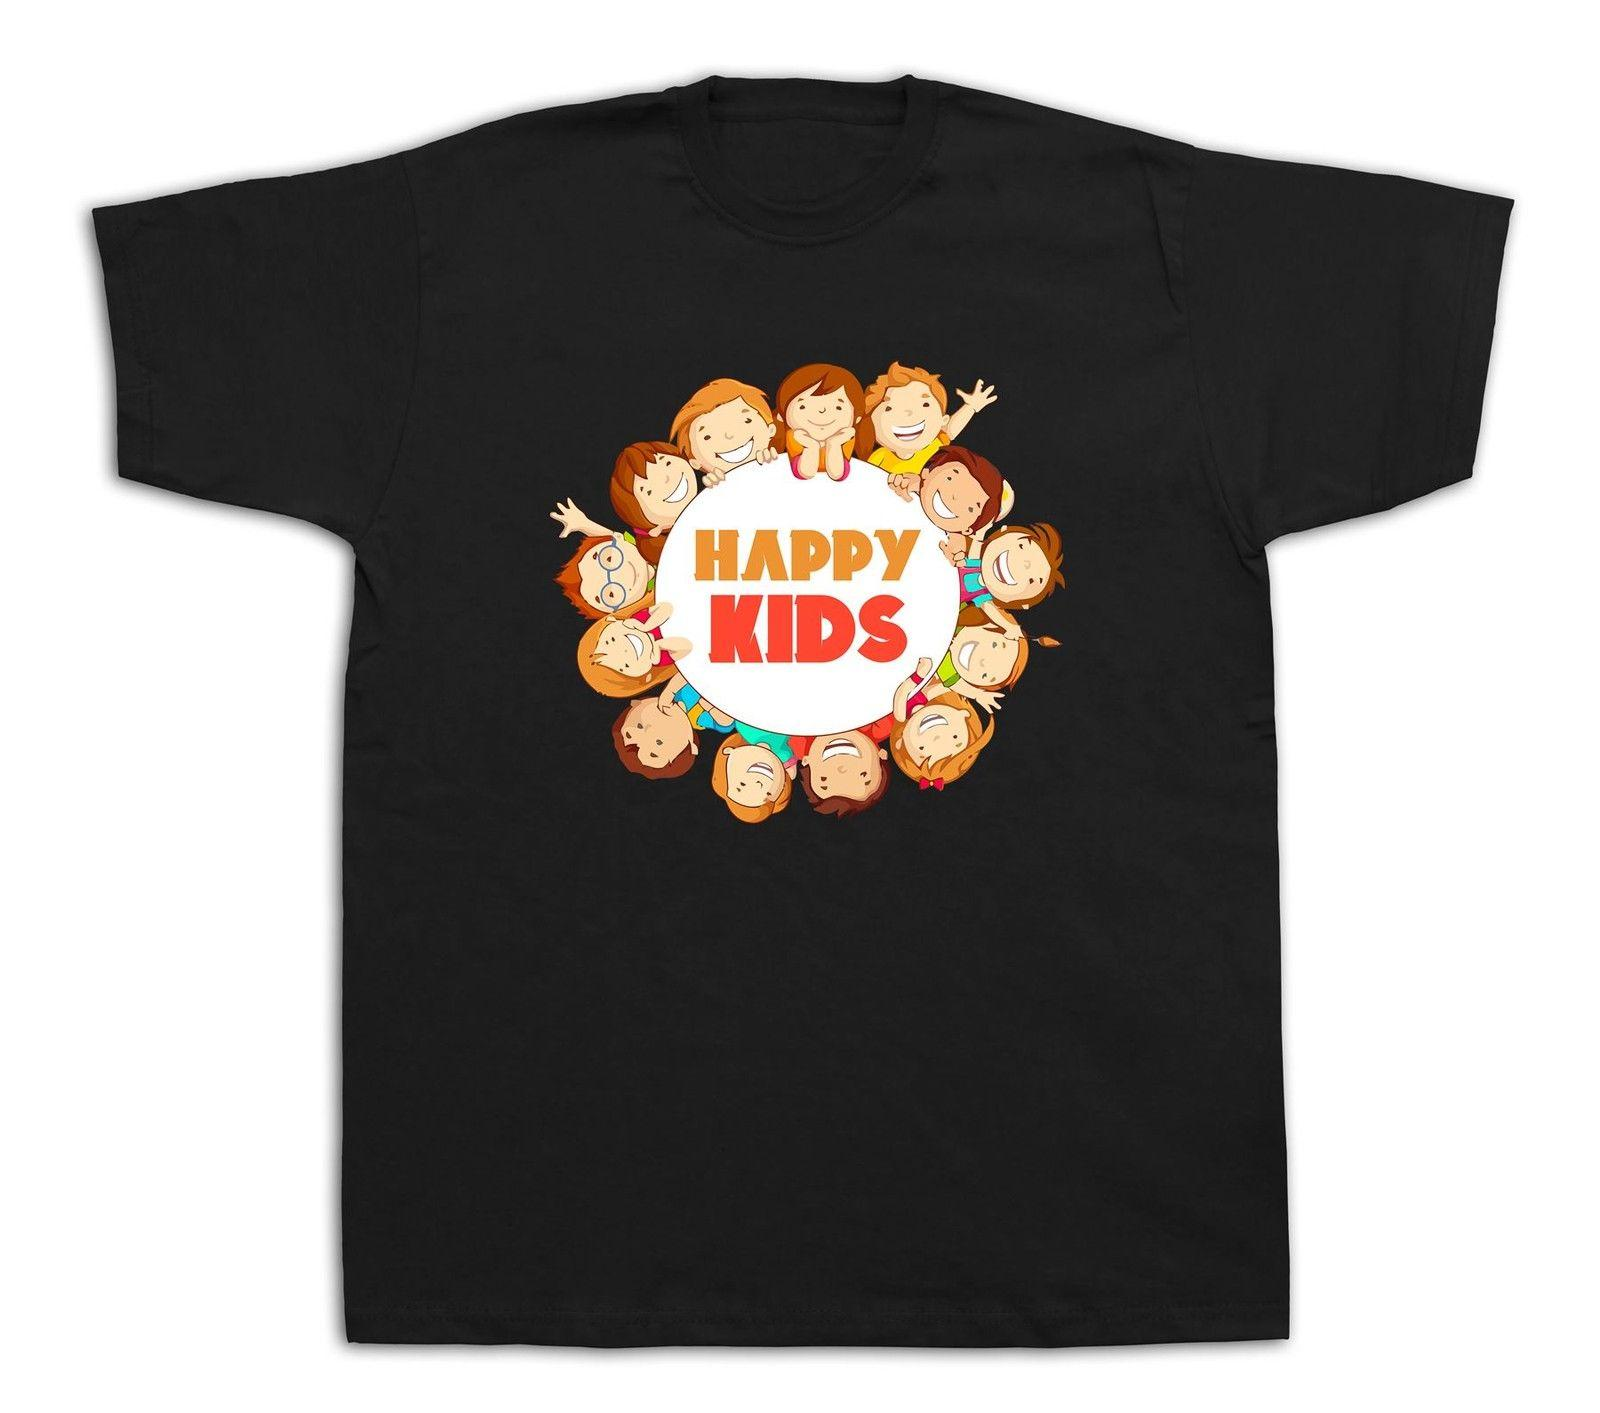 035f913ed9090f Happy Family Kids World Future Funny T Shirt Fashion Party Children Face  Smily Very Funny T Shirts Witty Tee Shirts From Caisemao1